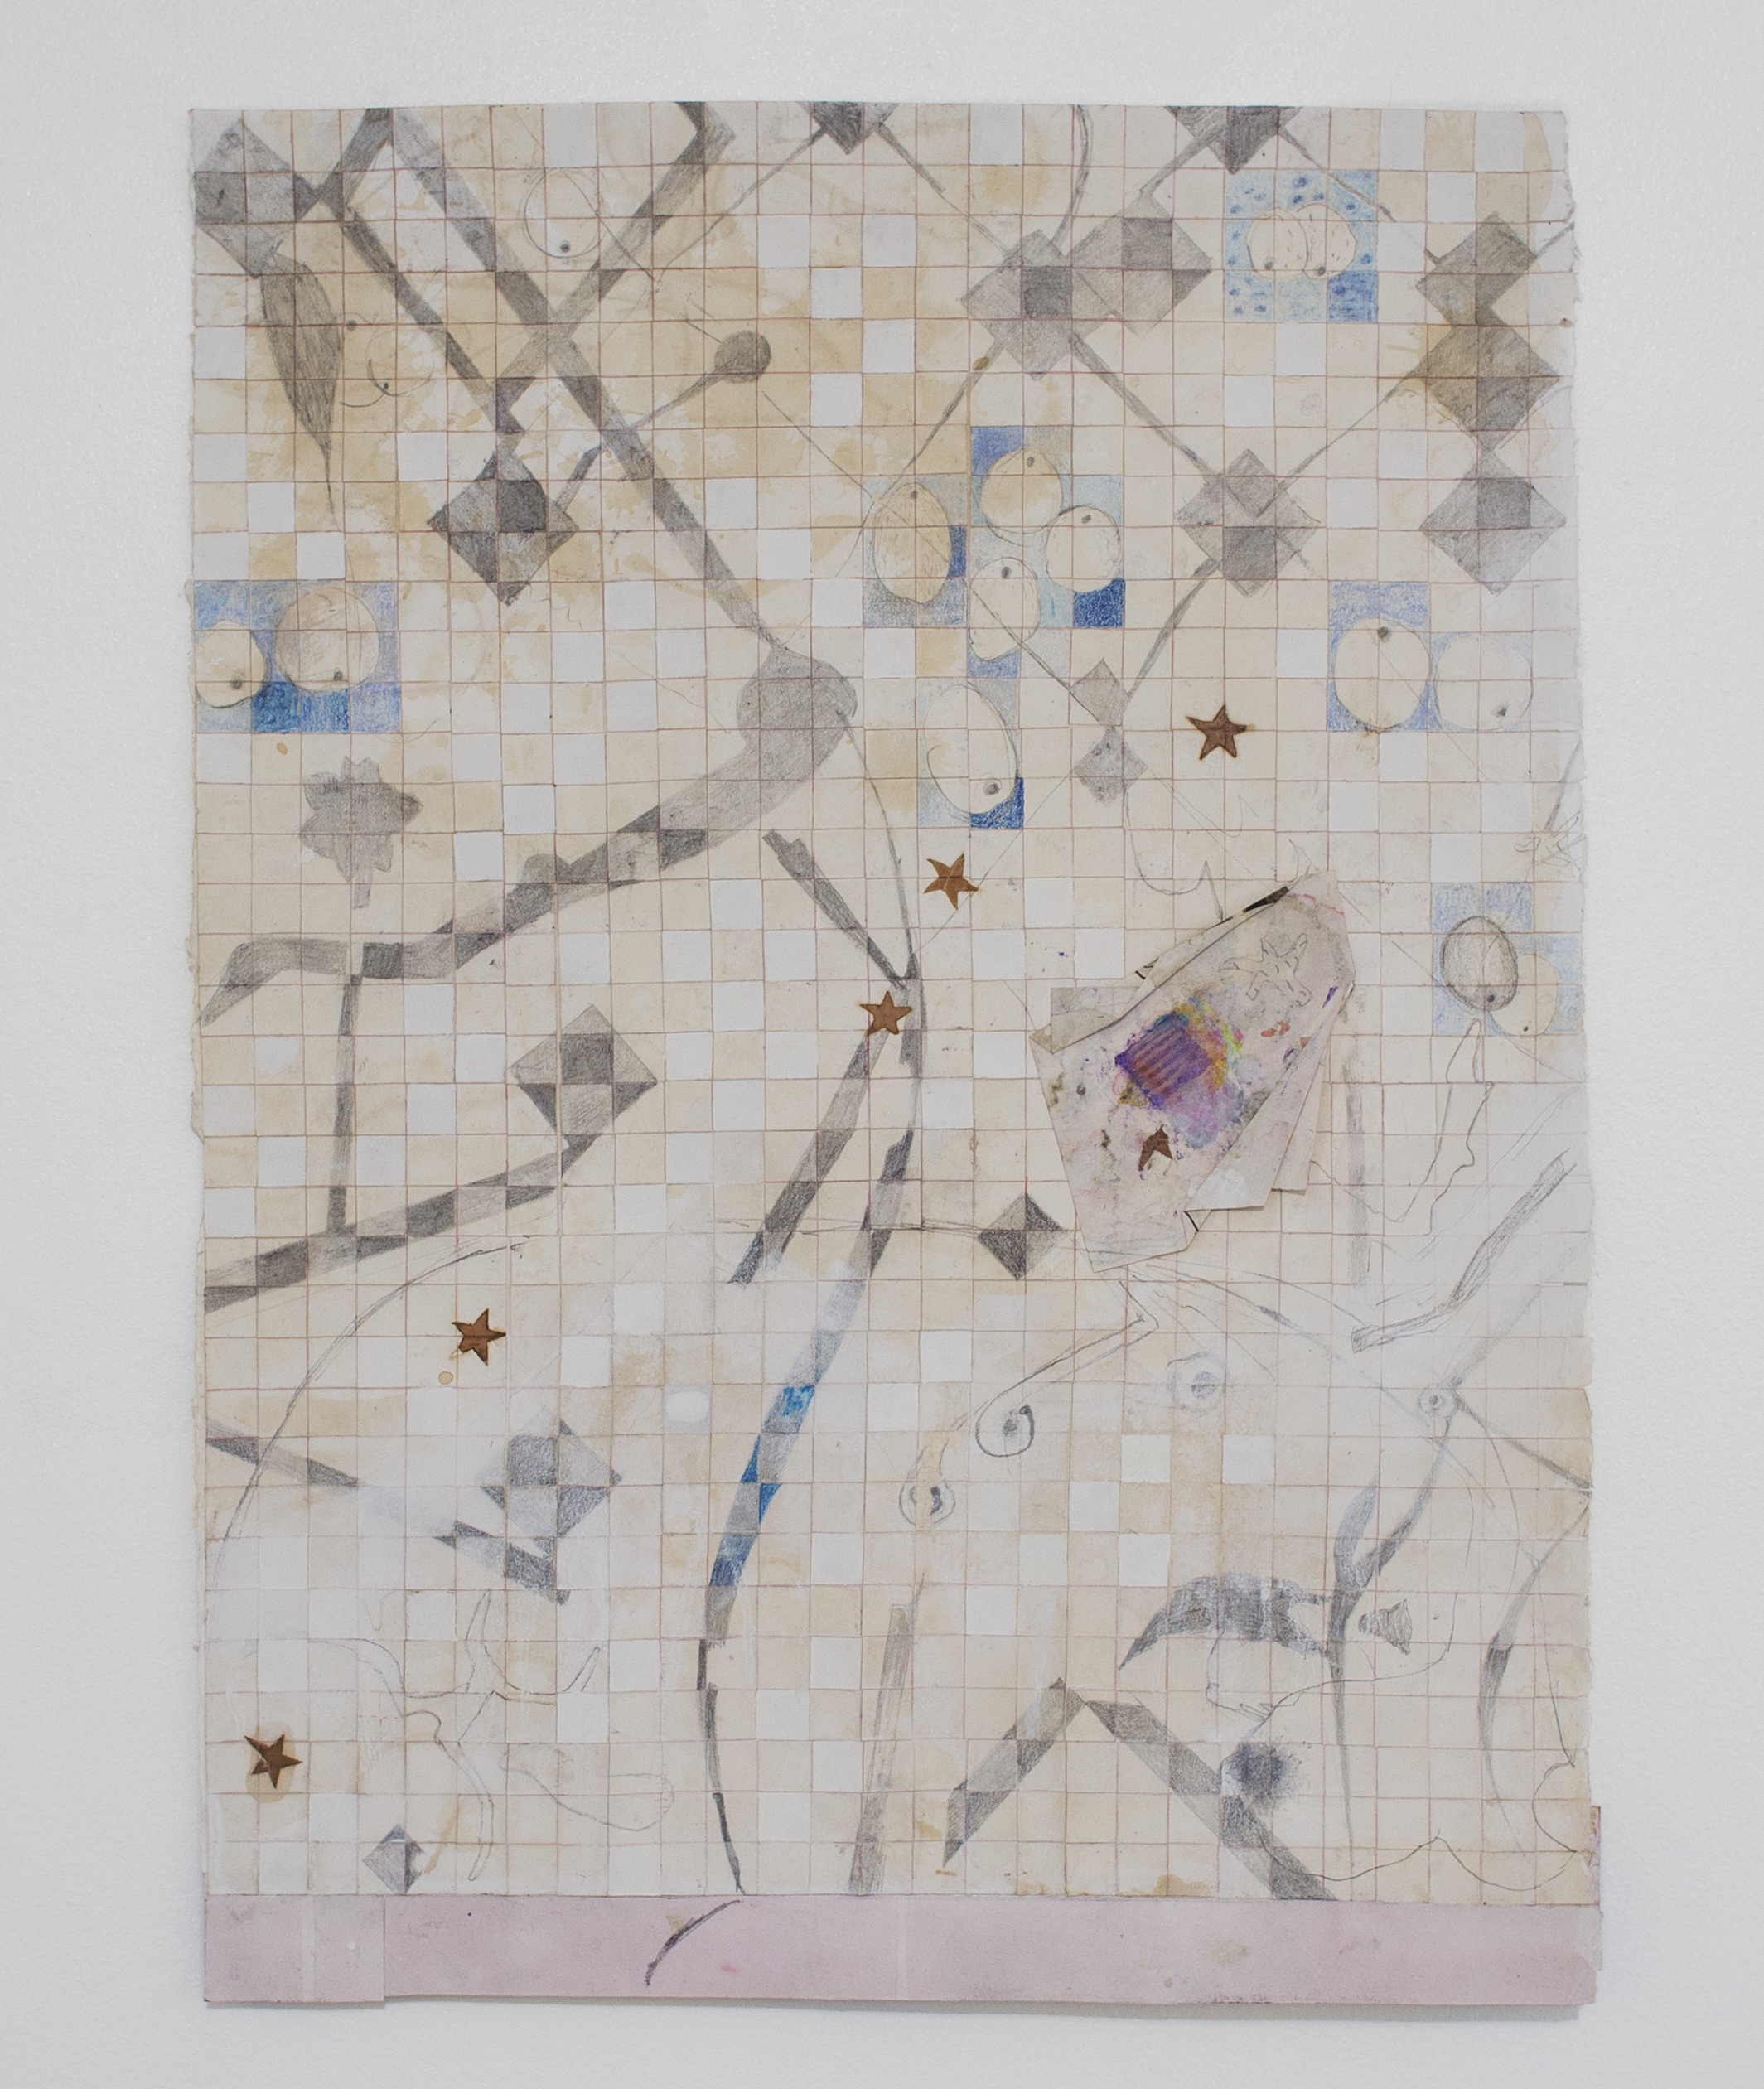 A Cosmology  , 2016-17  Graphite, acrylic, color pencil, pressed leaves, collage on cut paper